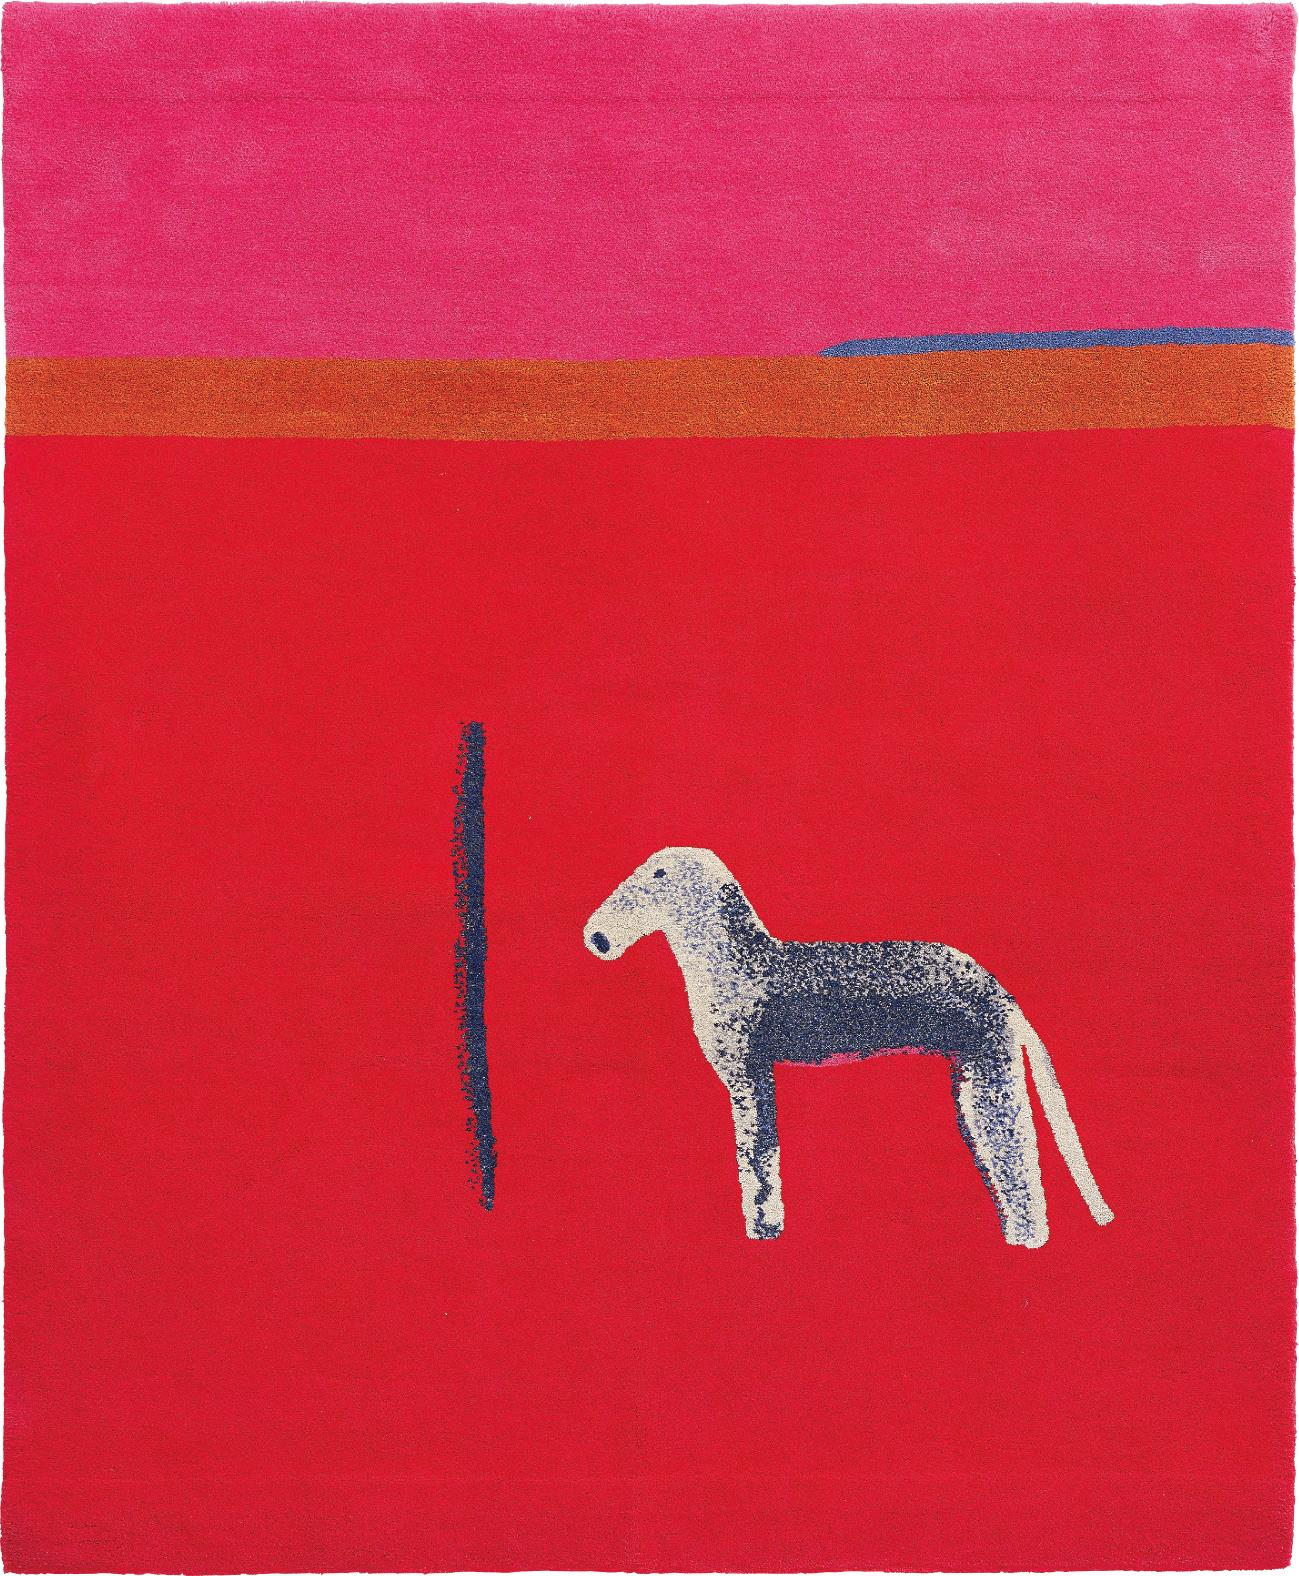 Craigie Aitchison-Bedlington In Red-2012